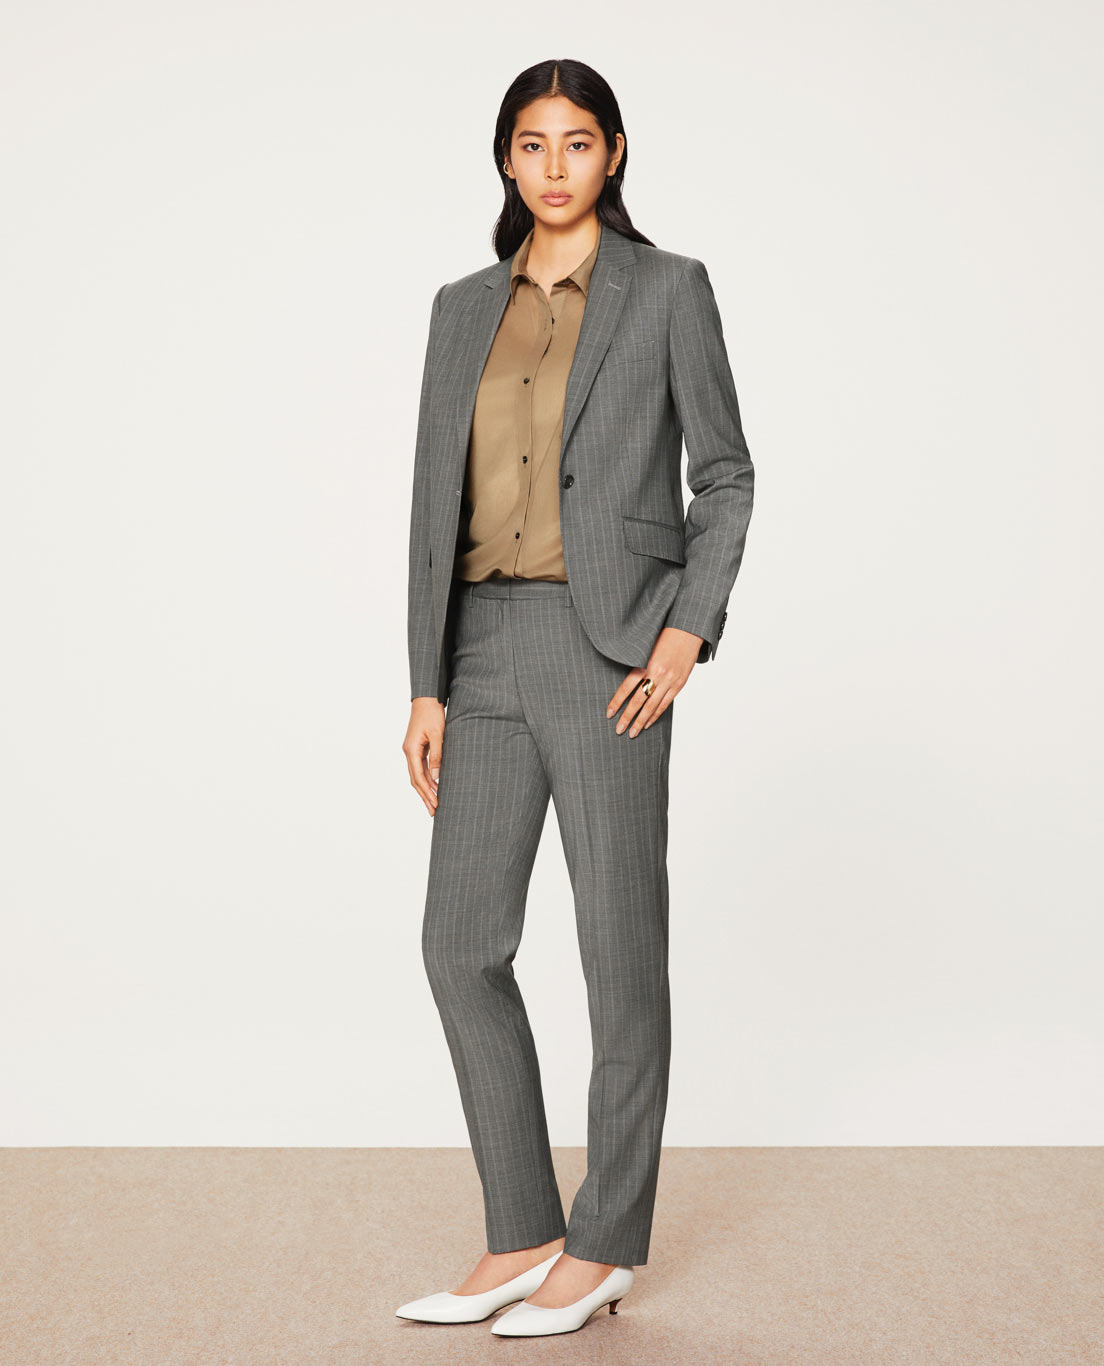 COMFORT TAILORED JACKET・TAPERED PANTS: 5504 / Grey Twin Stripe Tropical